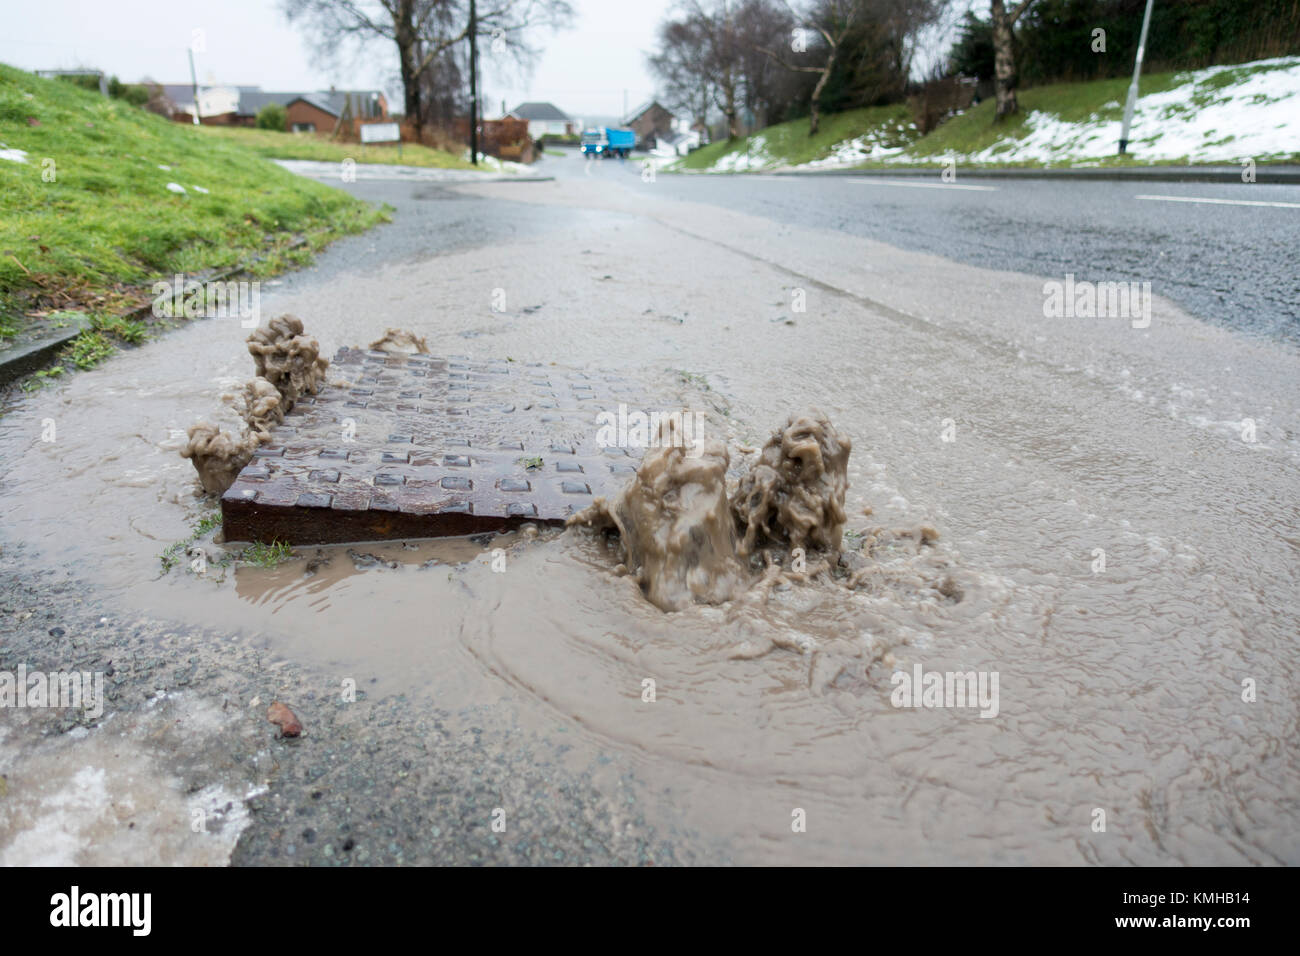 Flintshire, UK Weather. Melt water from recent snow causing problems in Flintshire with drains unable to cope with - Stock Image